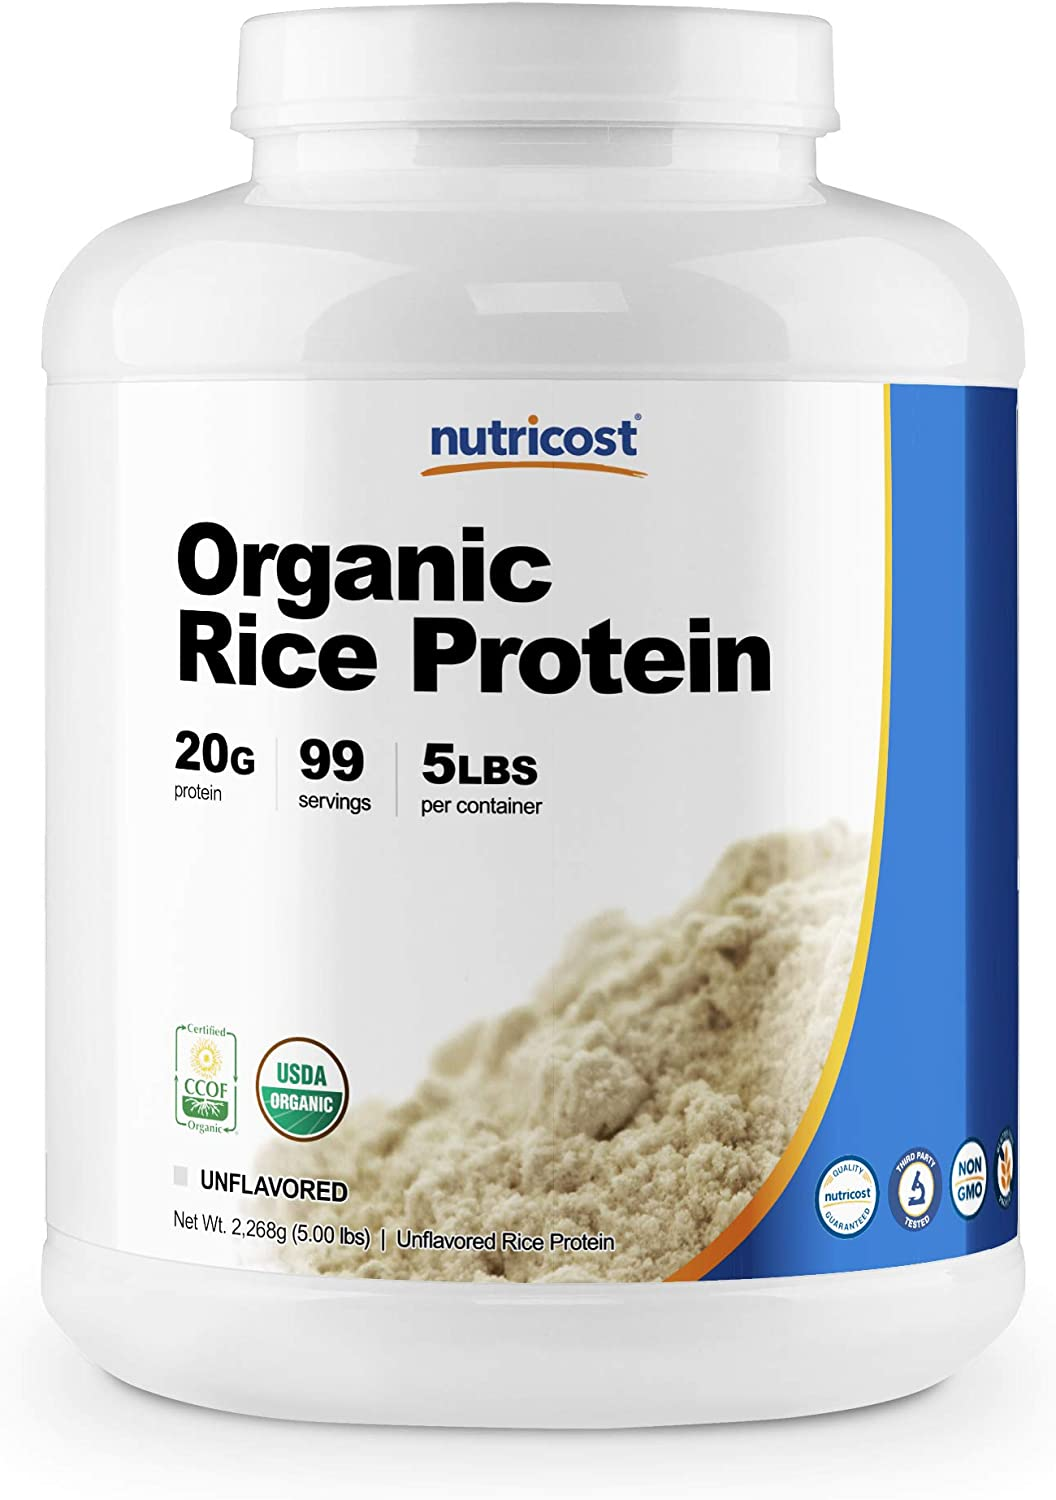 Nutricost Organic Rice Protein Powder 5lbs (Unflavored) - Certified USDA Organic, 20G of Rice Protein Per Serv, Non-GMO: Health & Personal Care